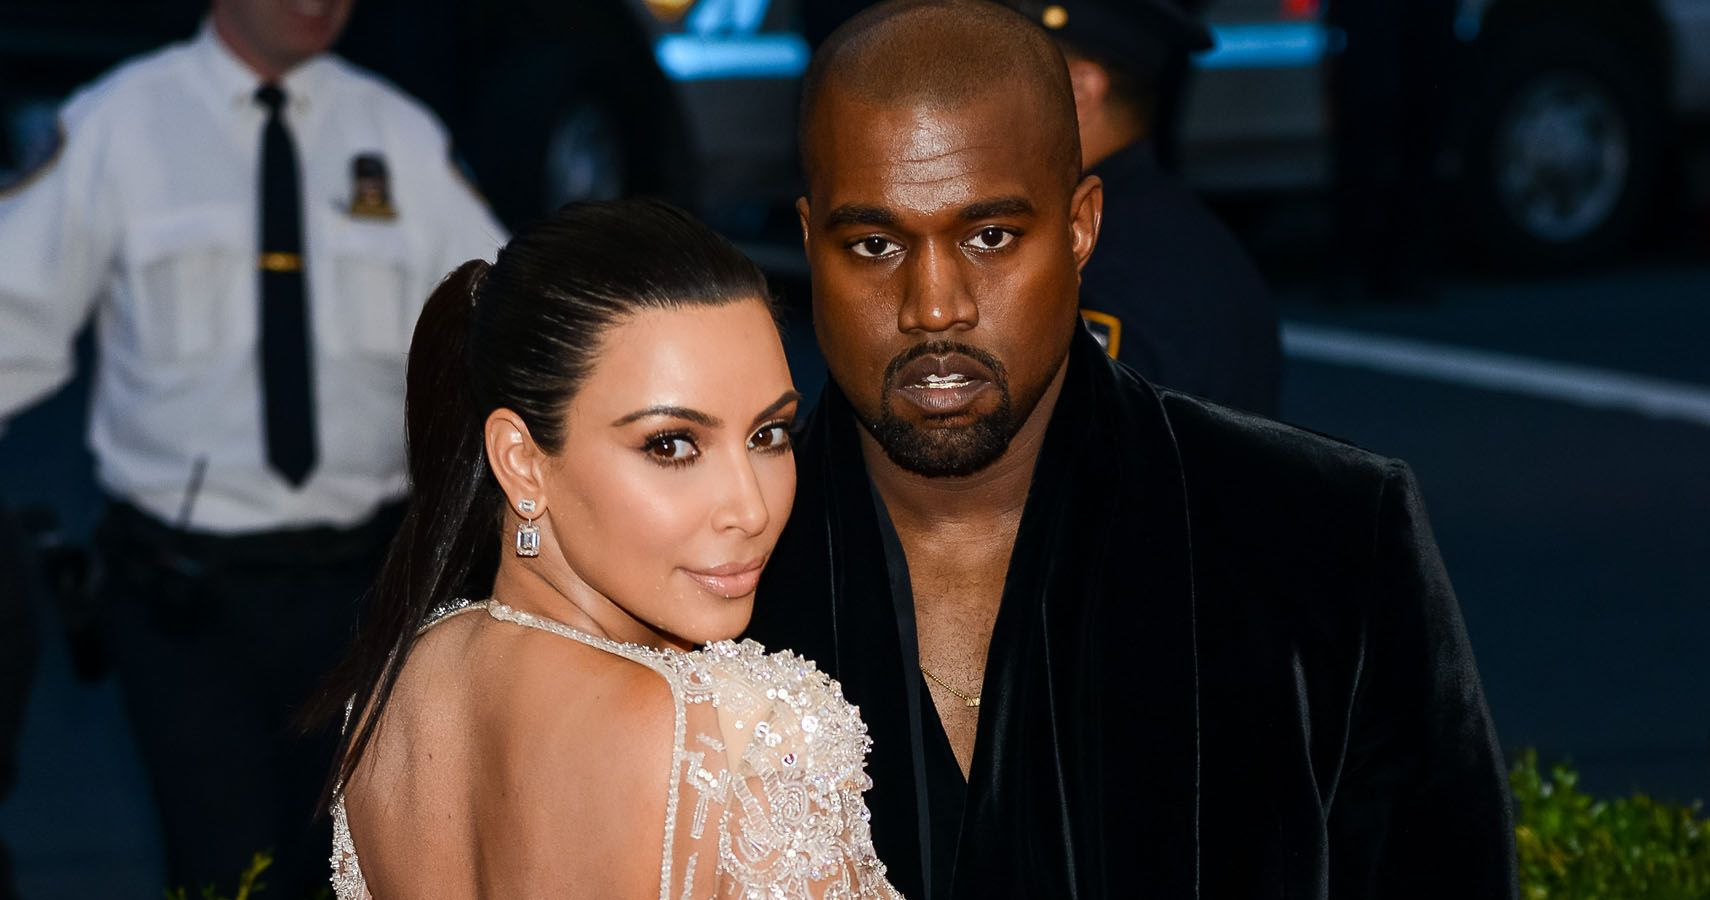 The Most Impressive Mansions Owned By Kim Kardashian and Kanye West